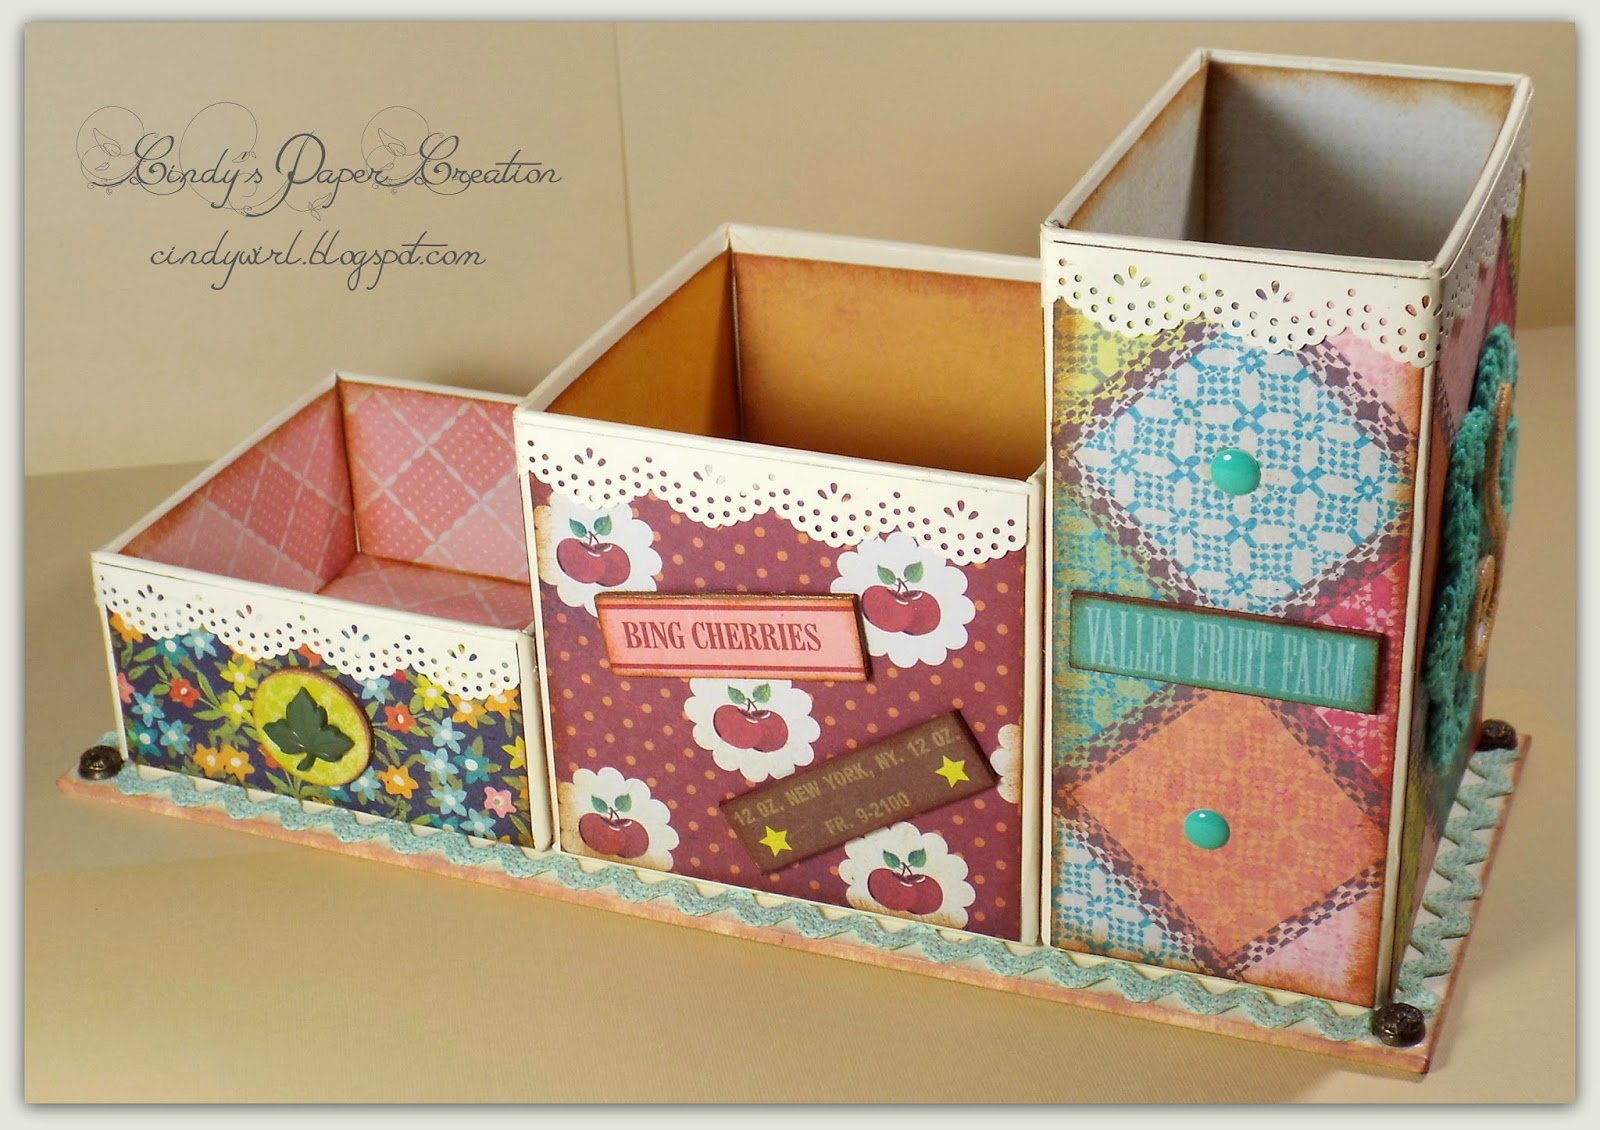 Cindy's Craft Table Organizer by cindywirl.blogspot.com